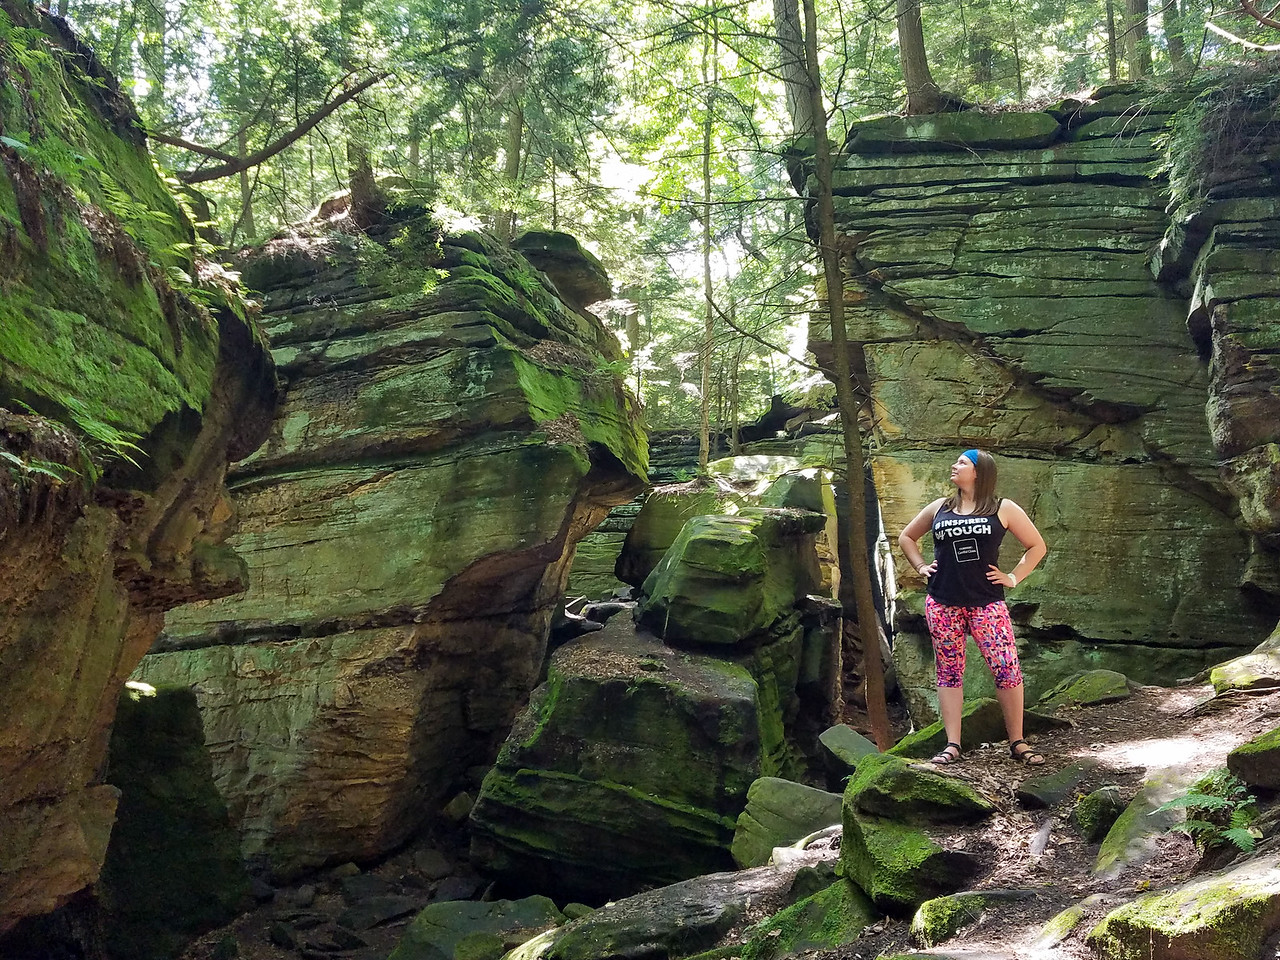 Virginia Kendall Ledges at Cuyahoga Valley National Park